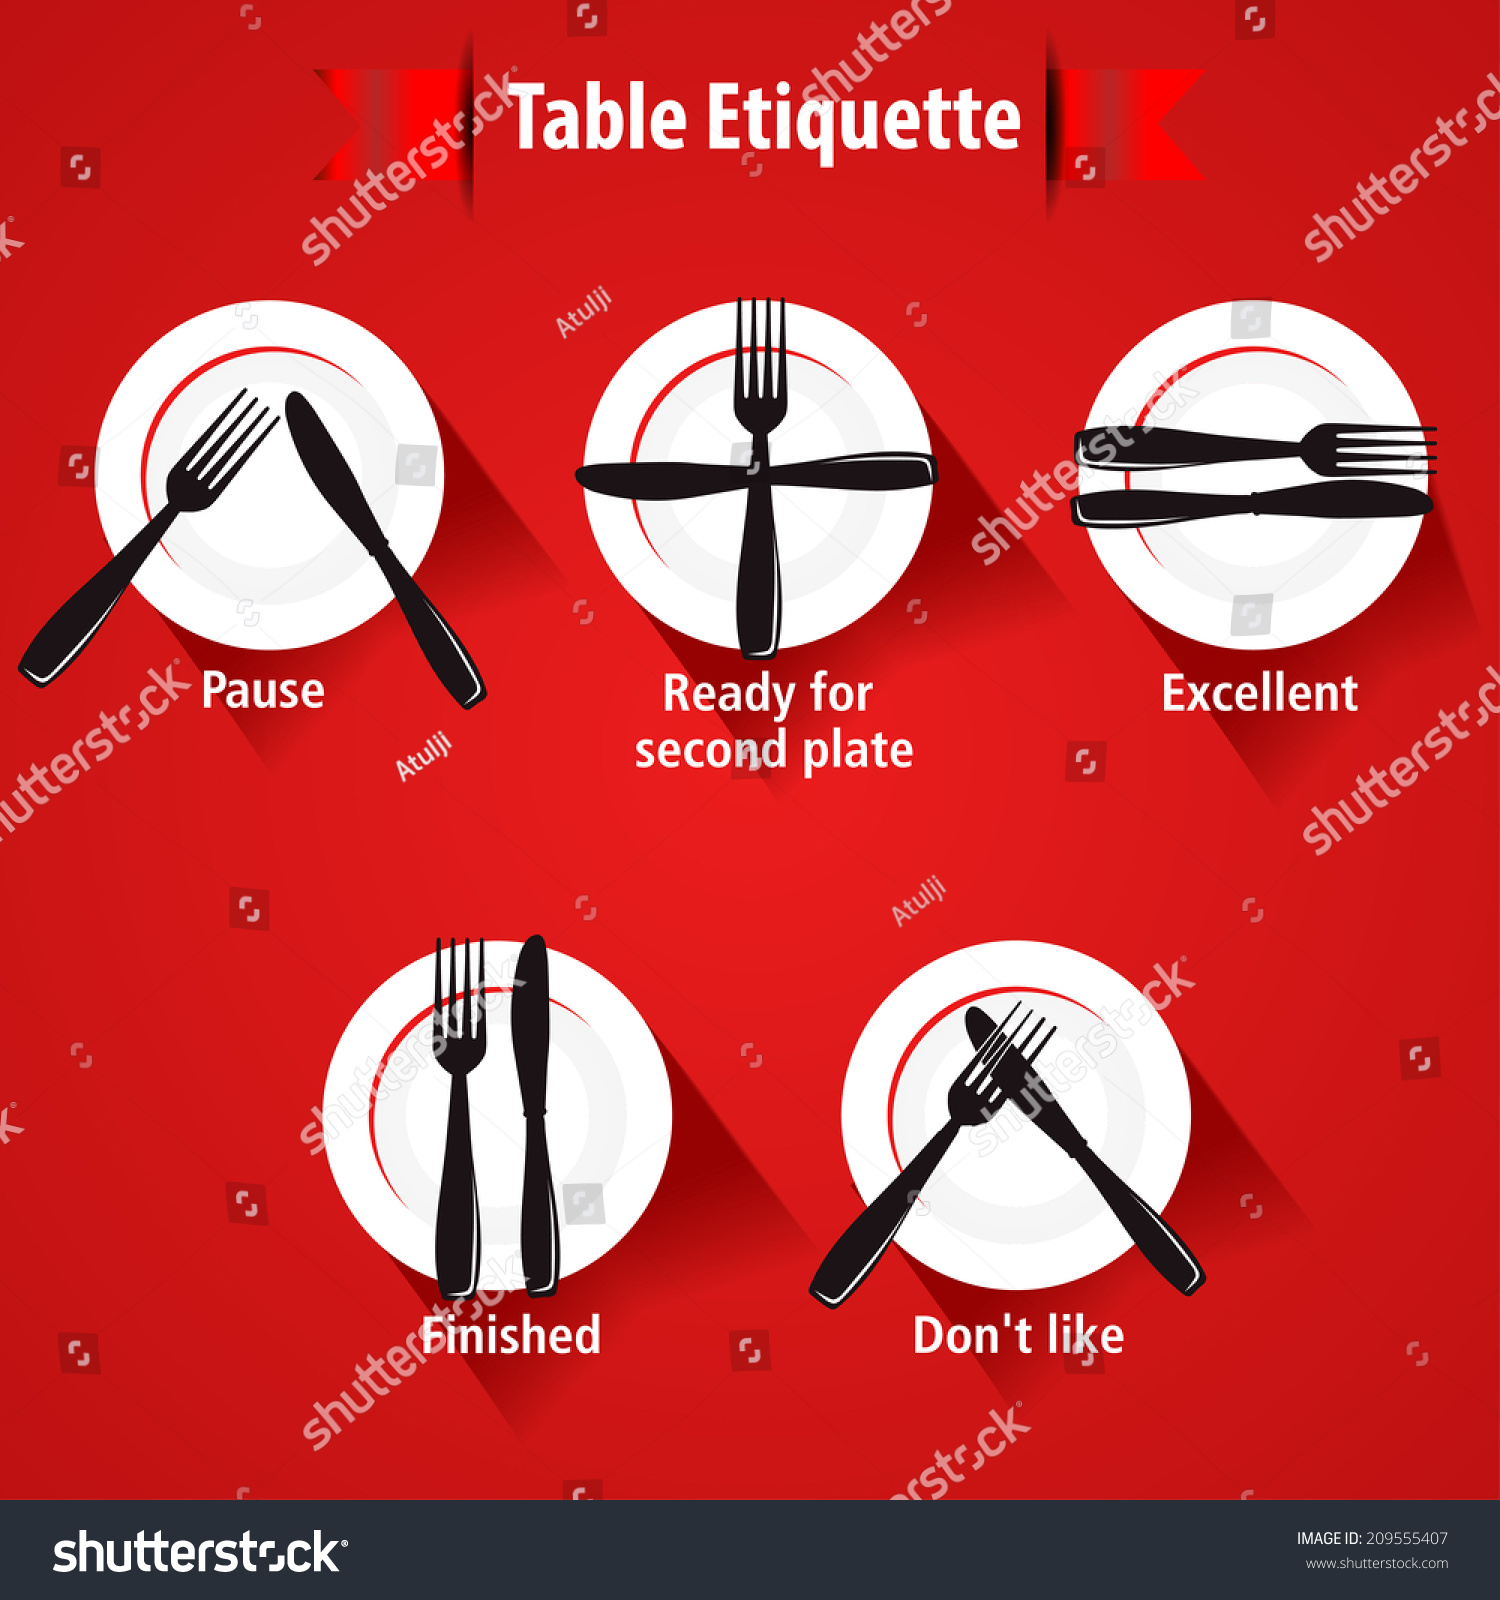 Formal Dinner SettingFormal Table Place Setting Chart  : stock vector dining etiquette and table manner forks and knifes signals eps vector 209555407 from softgalleri.com size 1500 x 1600 jpeg 469kB